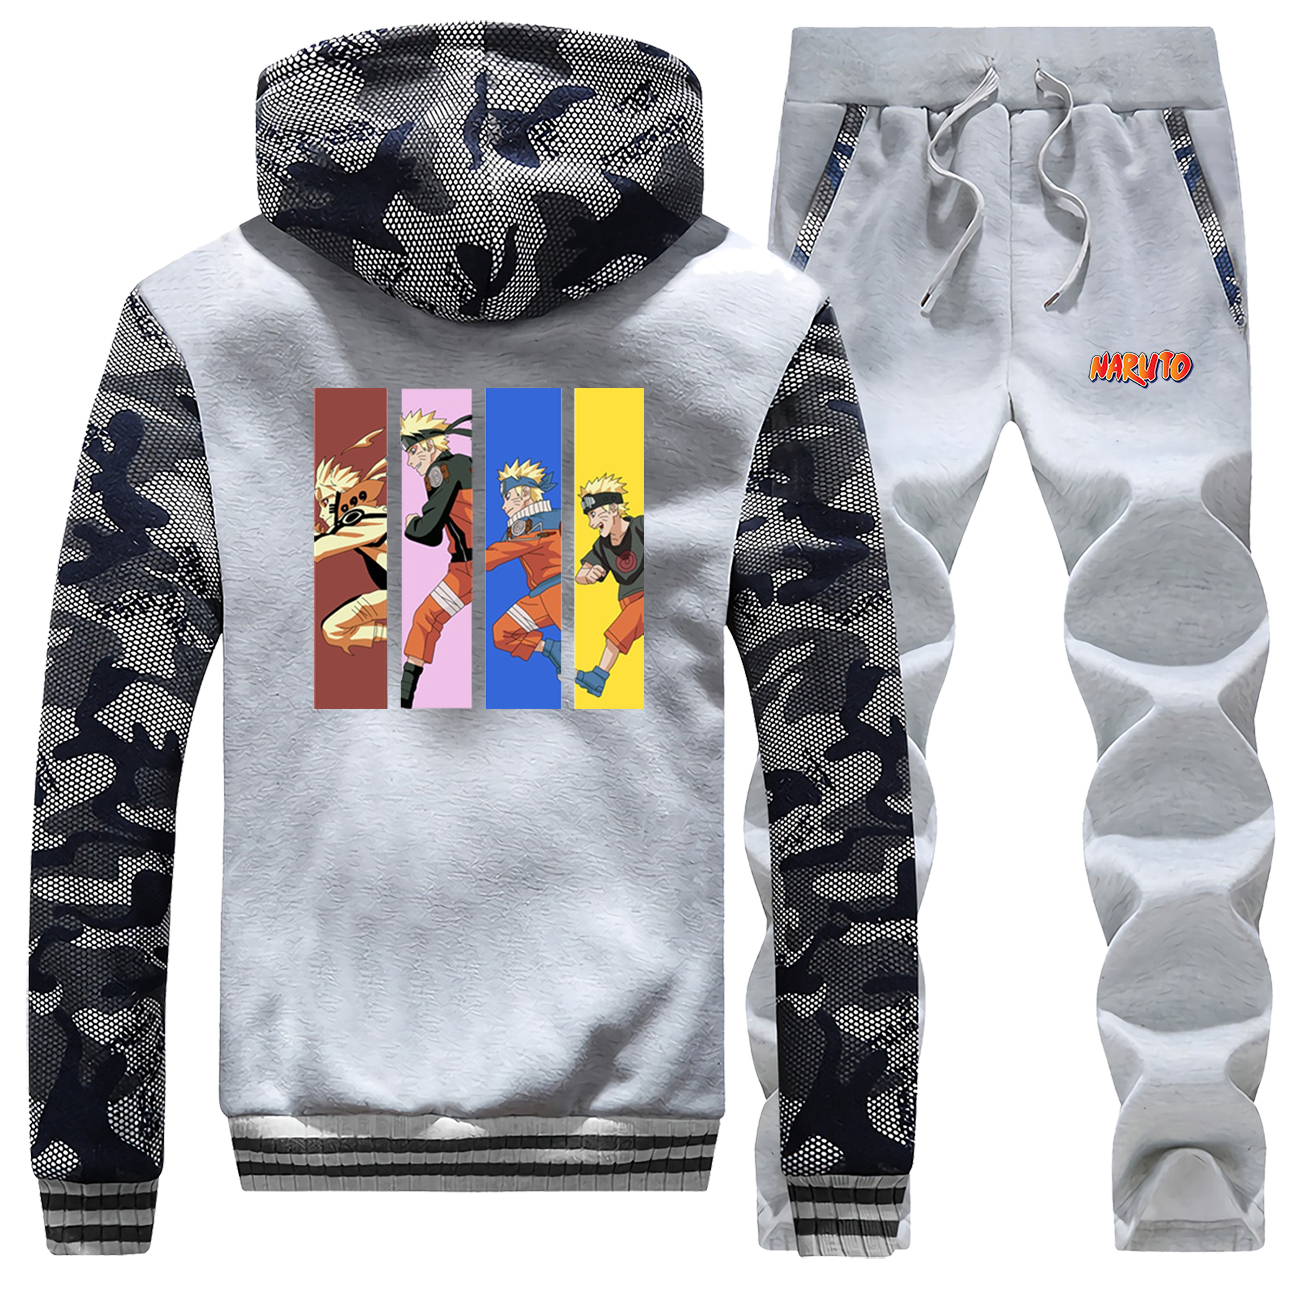 New 2019 Winter Japan Anime Naruto Mens Hoodie Sweatshirt Coat Thick Hip Hop Camouflage Warm Jackets Suit+Pants 2 Piece Set